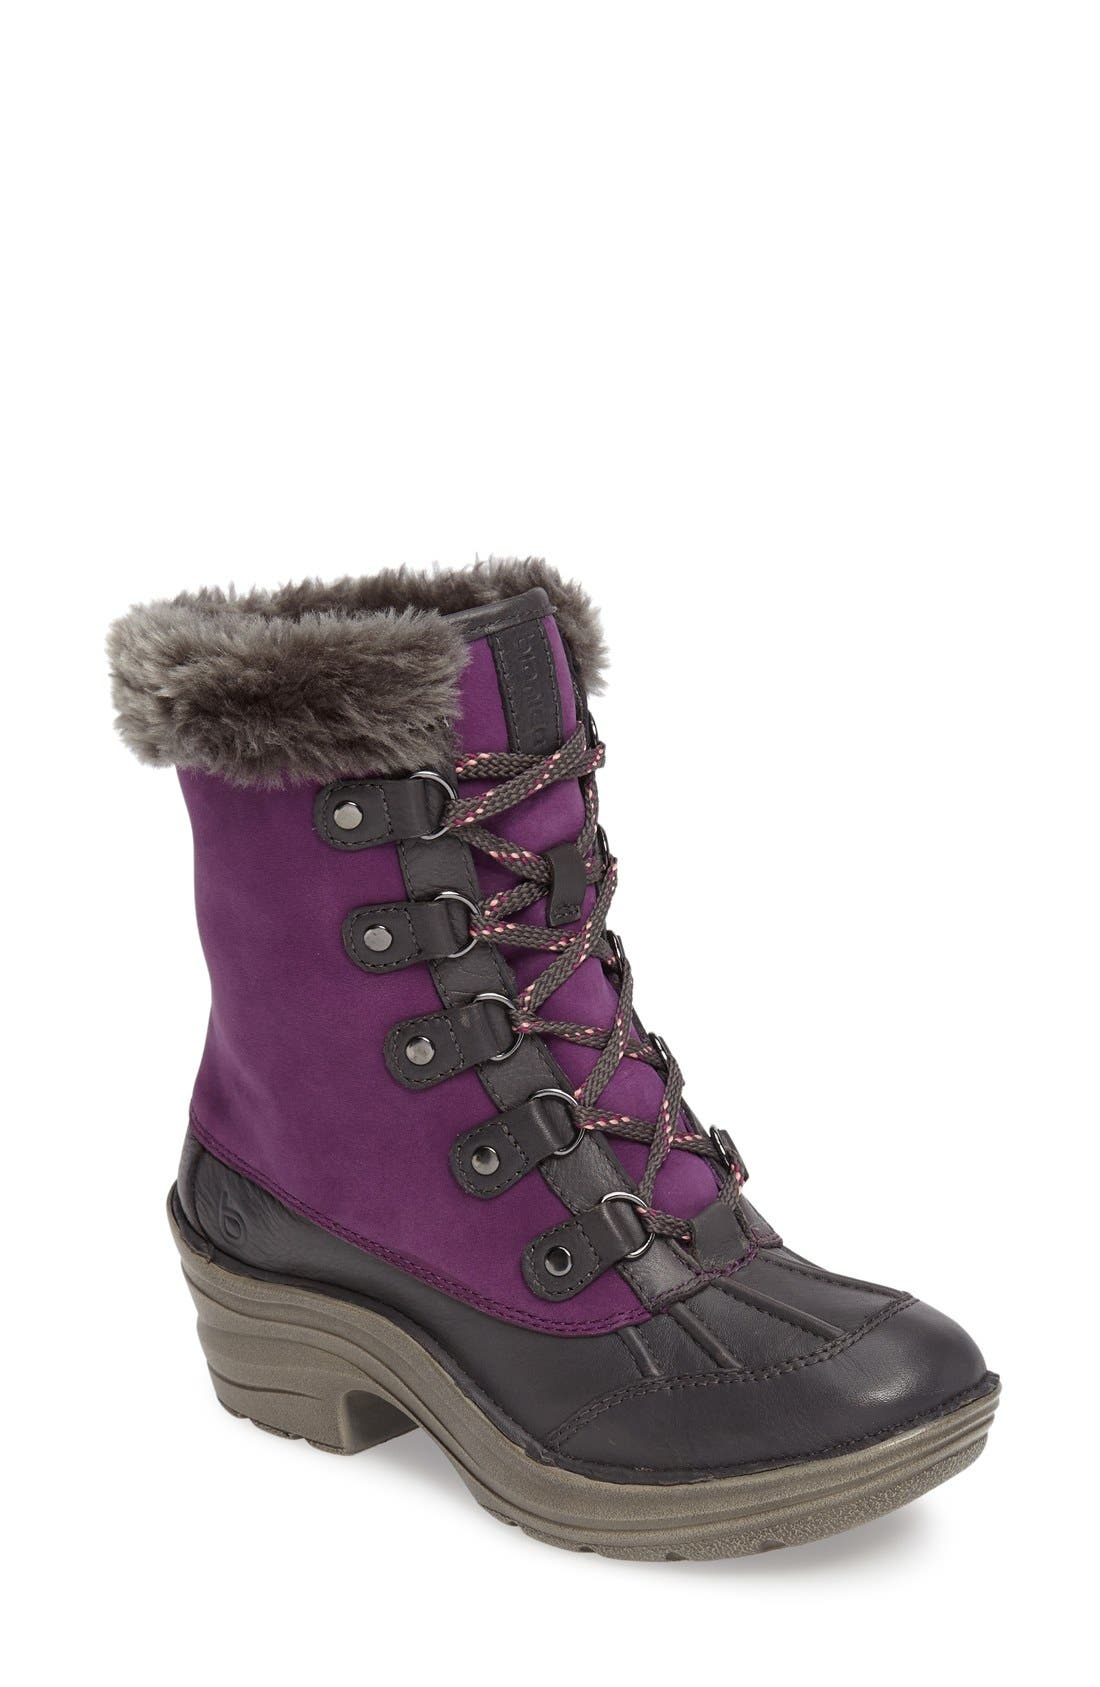 Alternate Image 1 Selected - bionica Rosemound Waterproof Boot (Women)